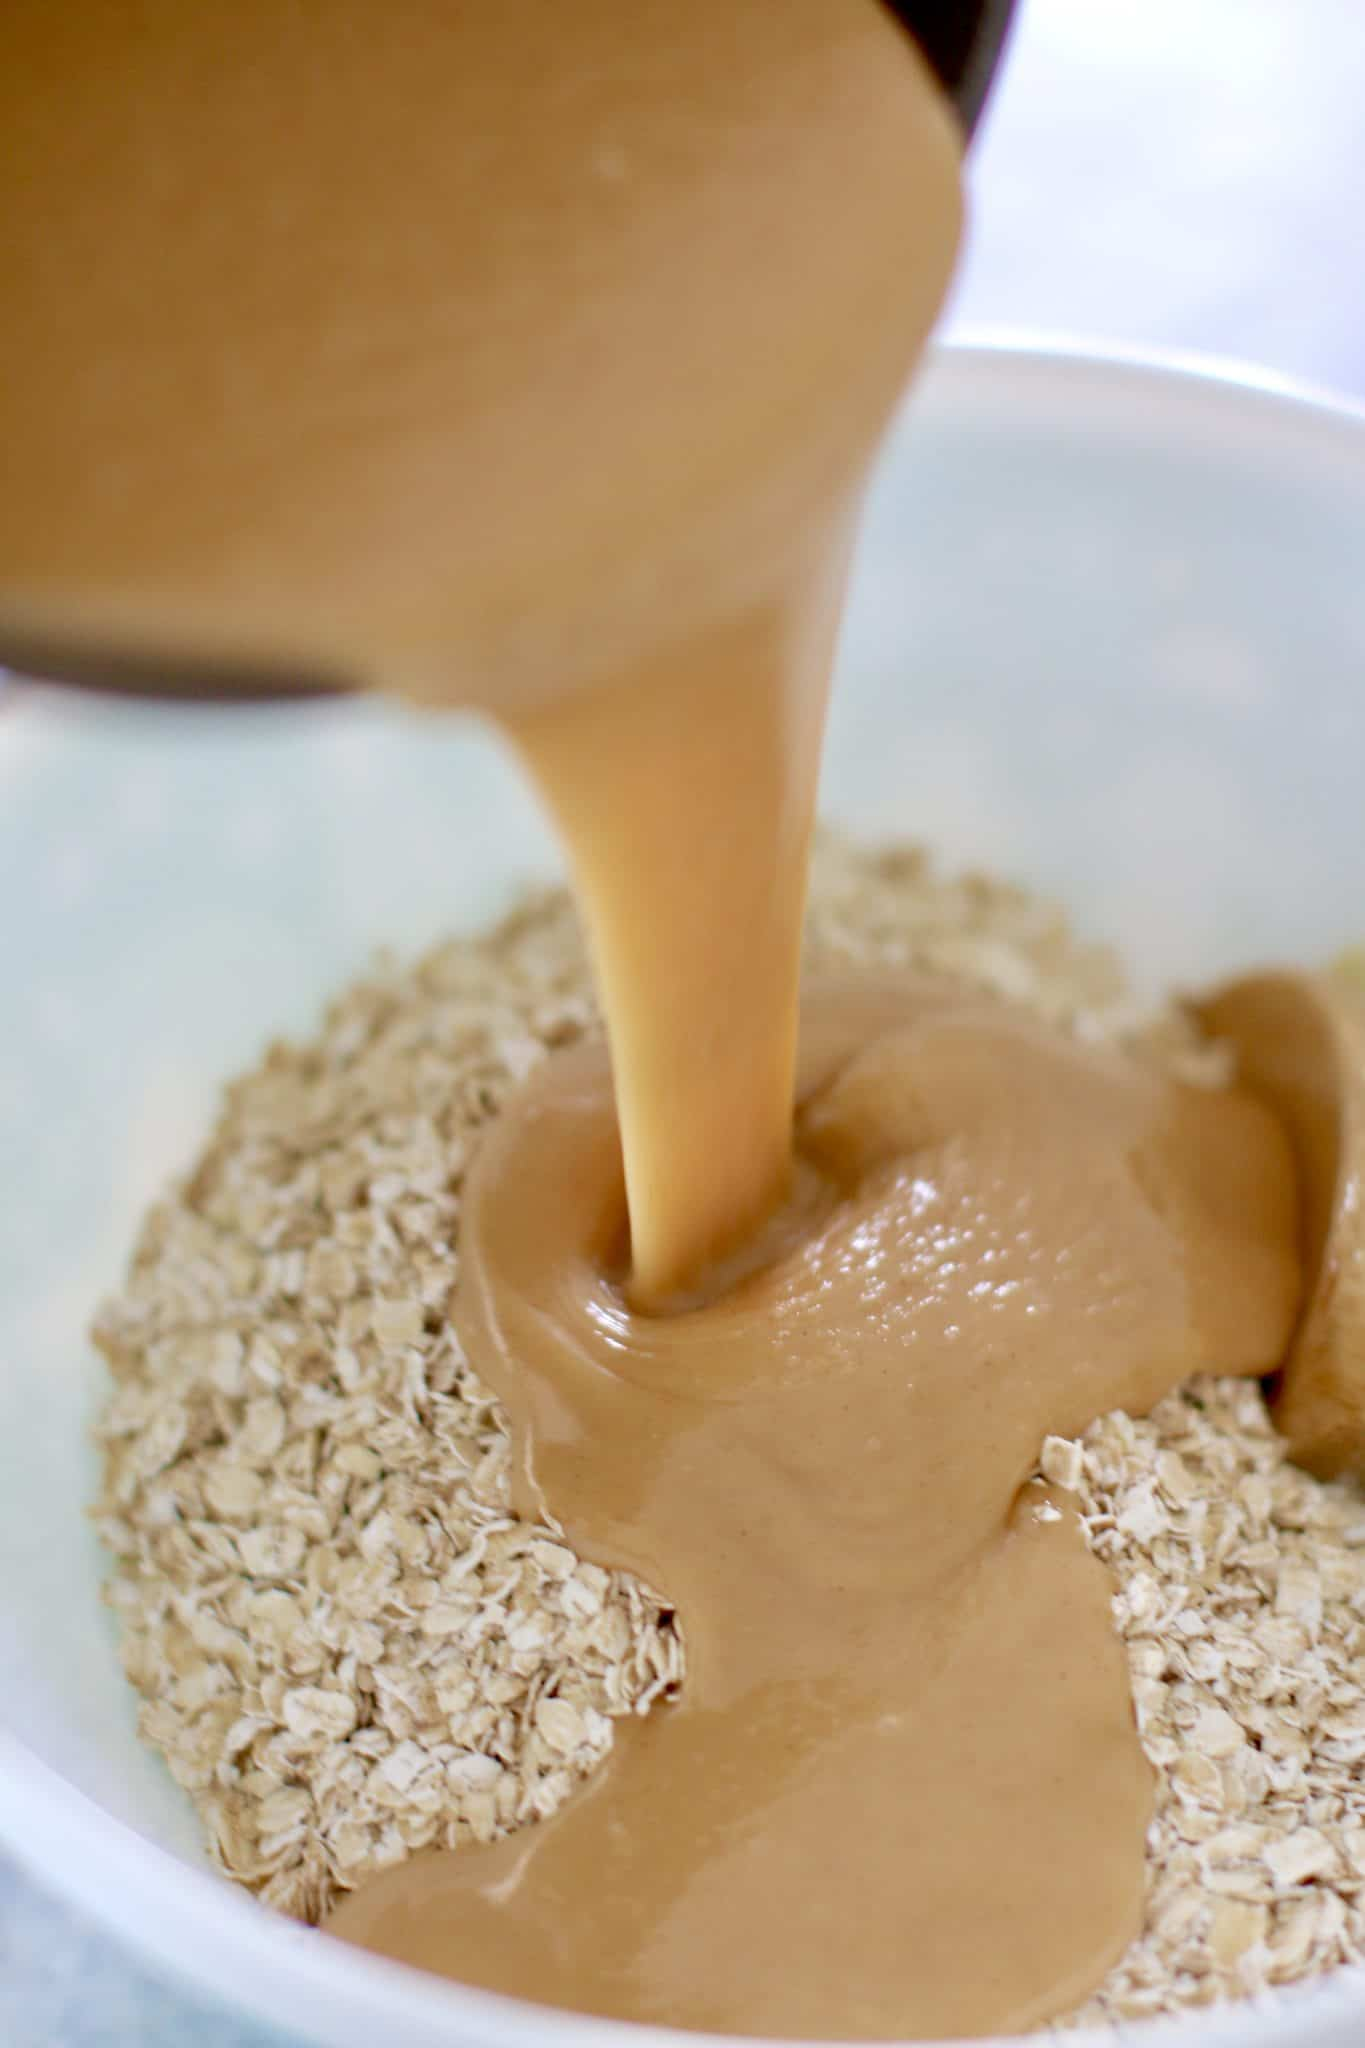 warm peanut butter mixture being poured over quick cooking oatmeal in a bowl